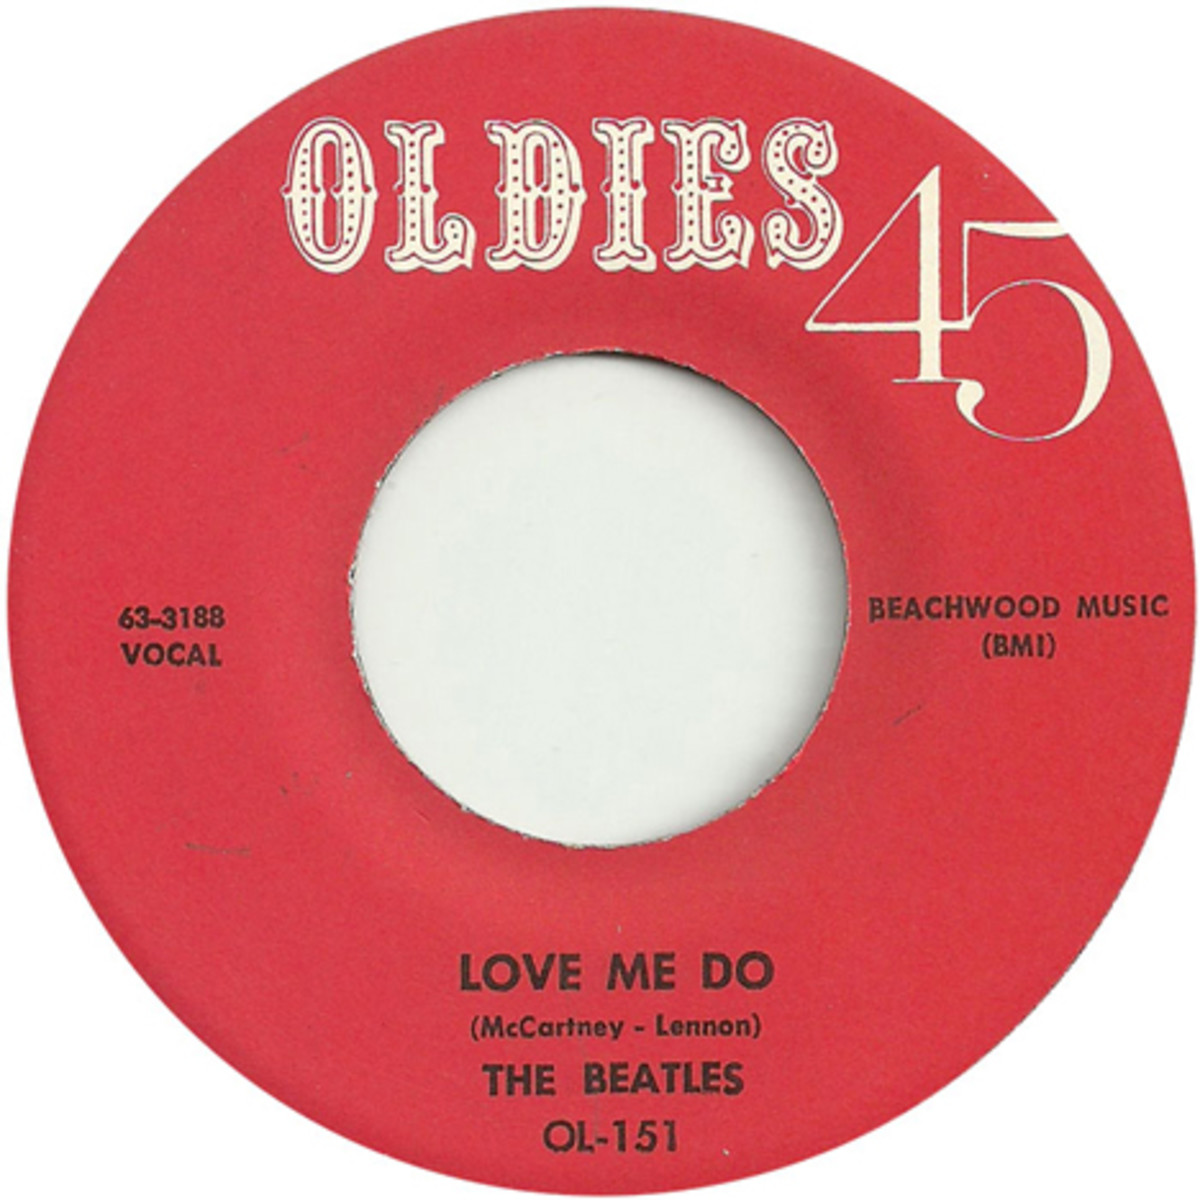 The Beatles Oldies 45 Love Me Do